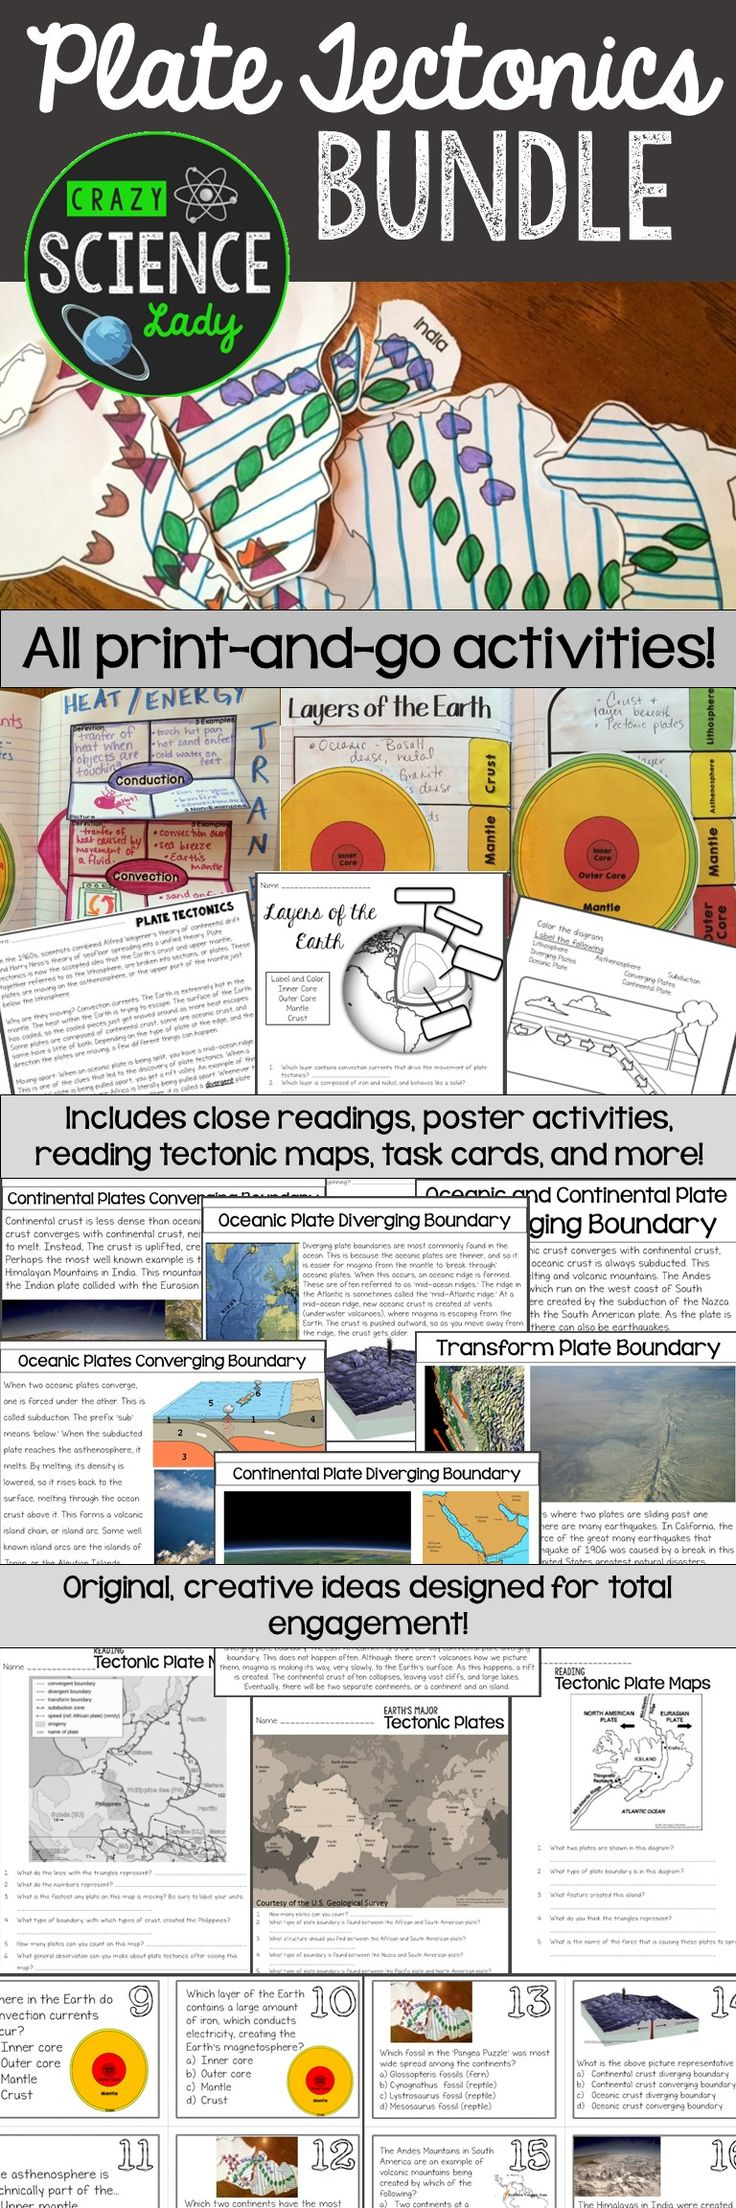 best ideas about plate tectonics geology th 17 best ideas about plate tectonics geology 6th grade science and rock cycle